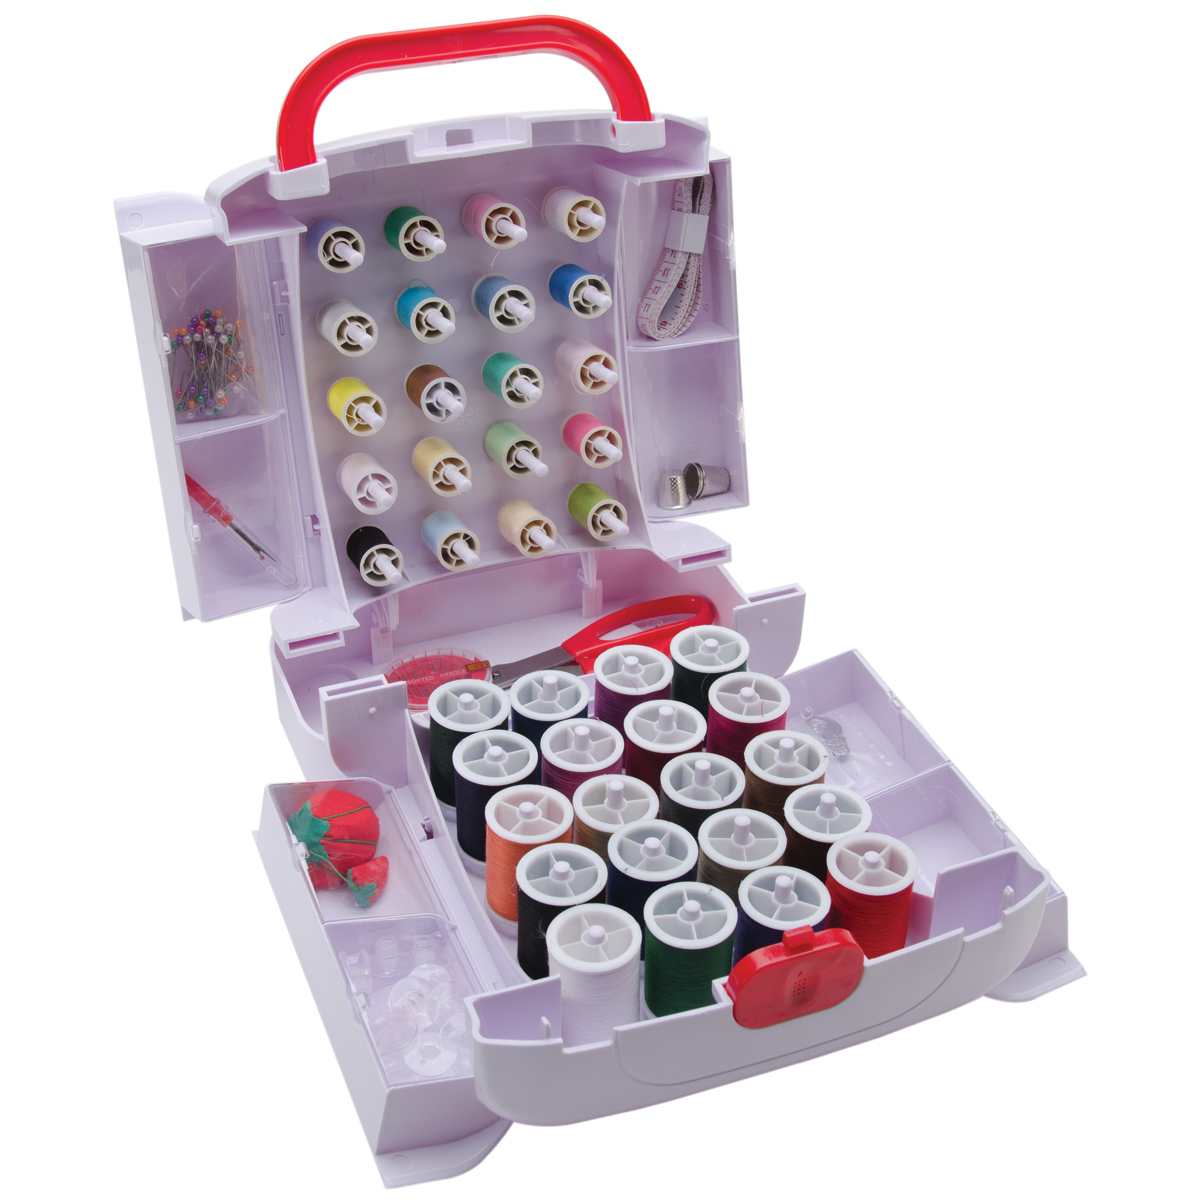 Singer Sew Essentials Storage System, 165 Pieces